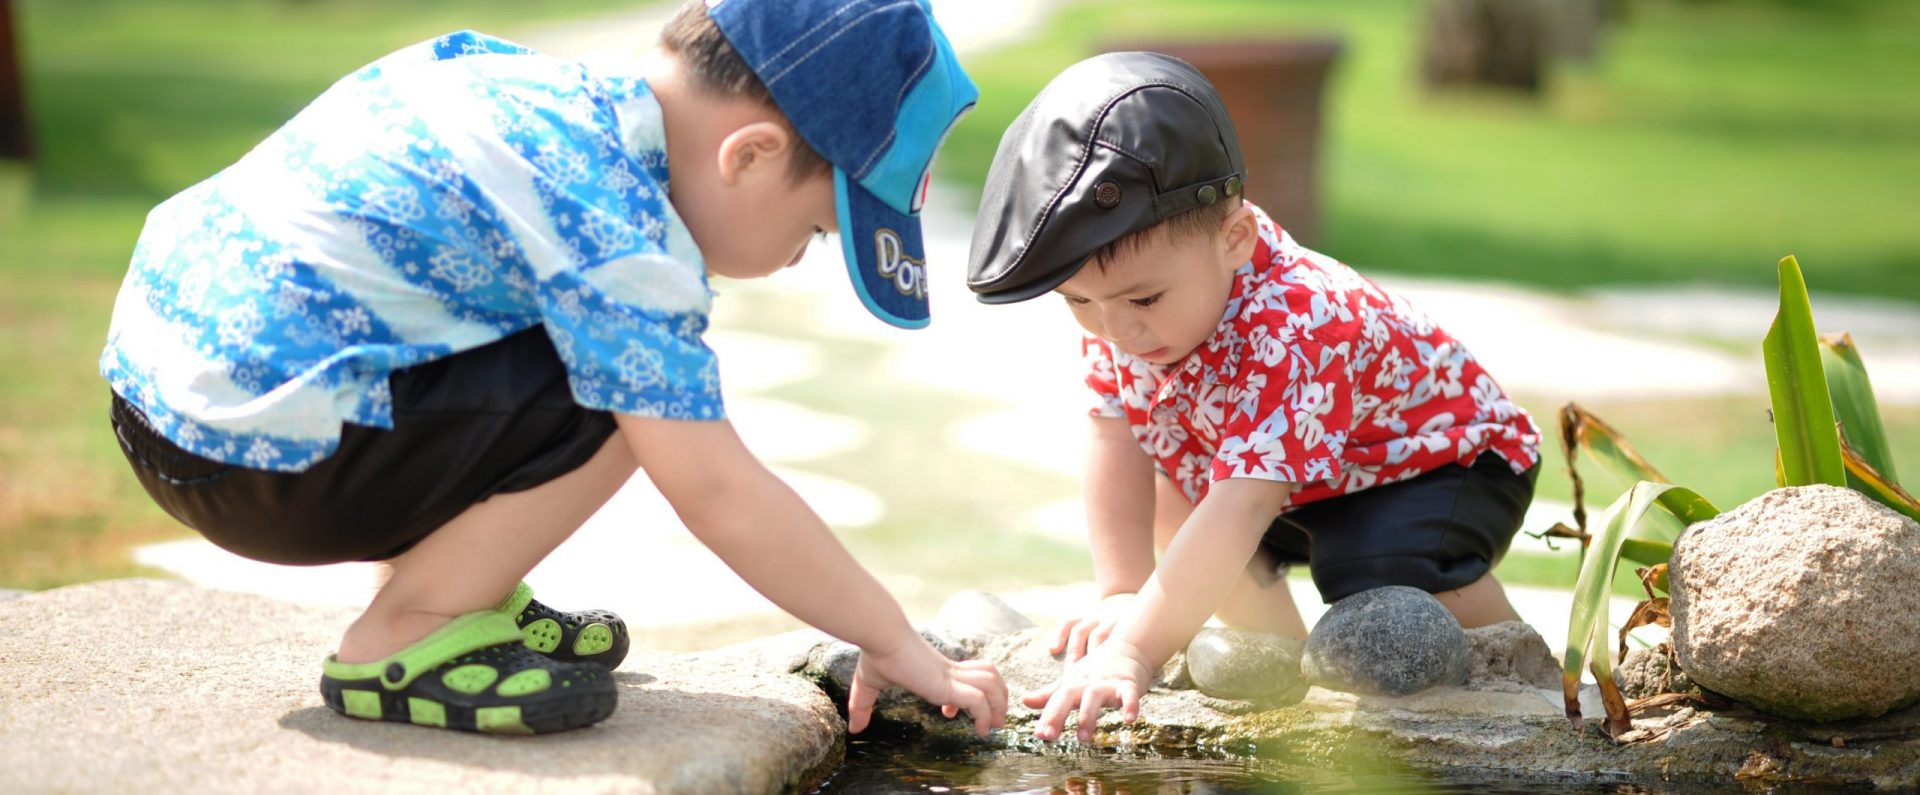 Canva - Boy in Blue and White Shirt Playing Near on Body of Water With Boy in Red Shirt